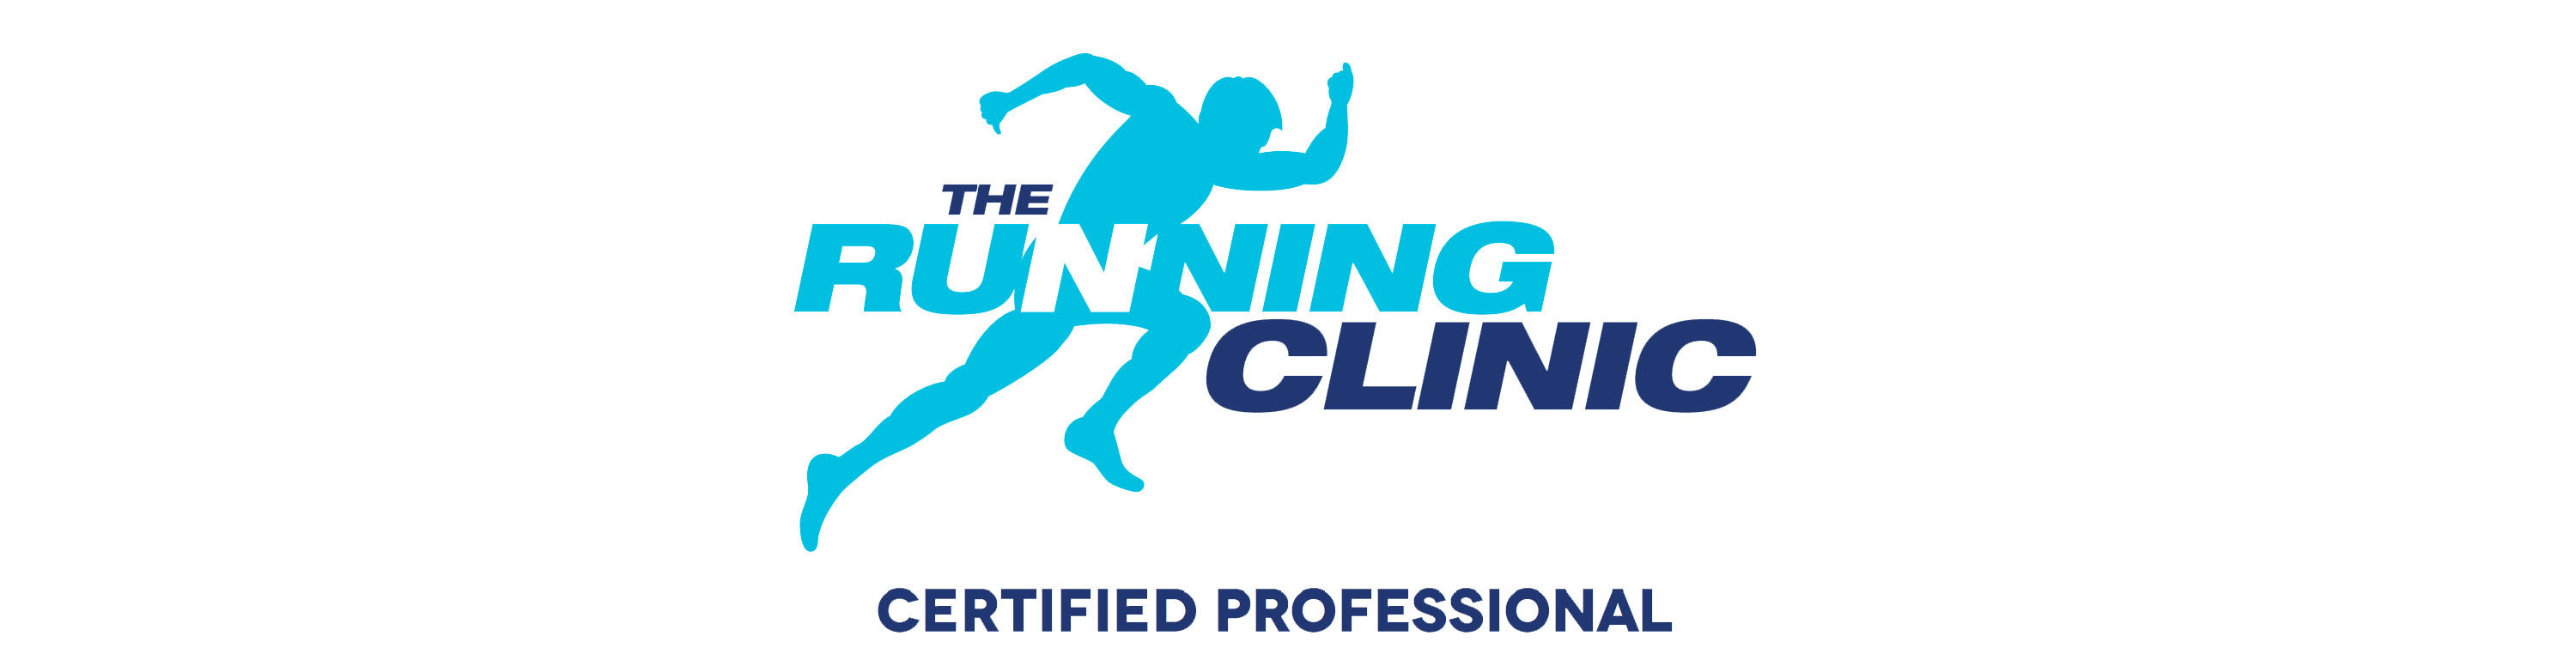 The Running Clinic Certified Professional